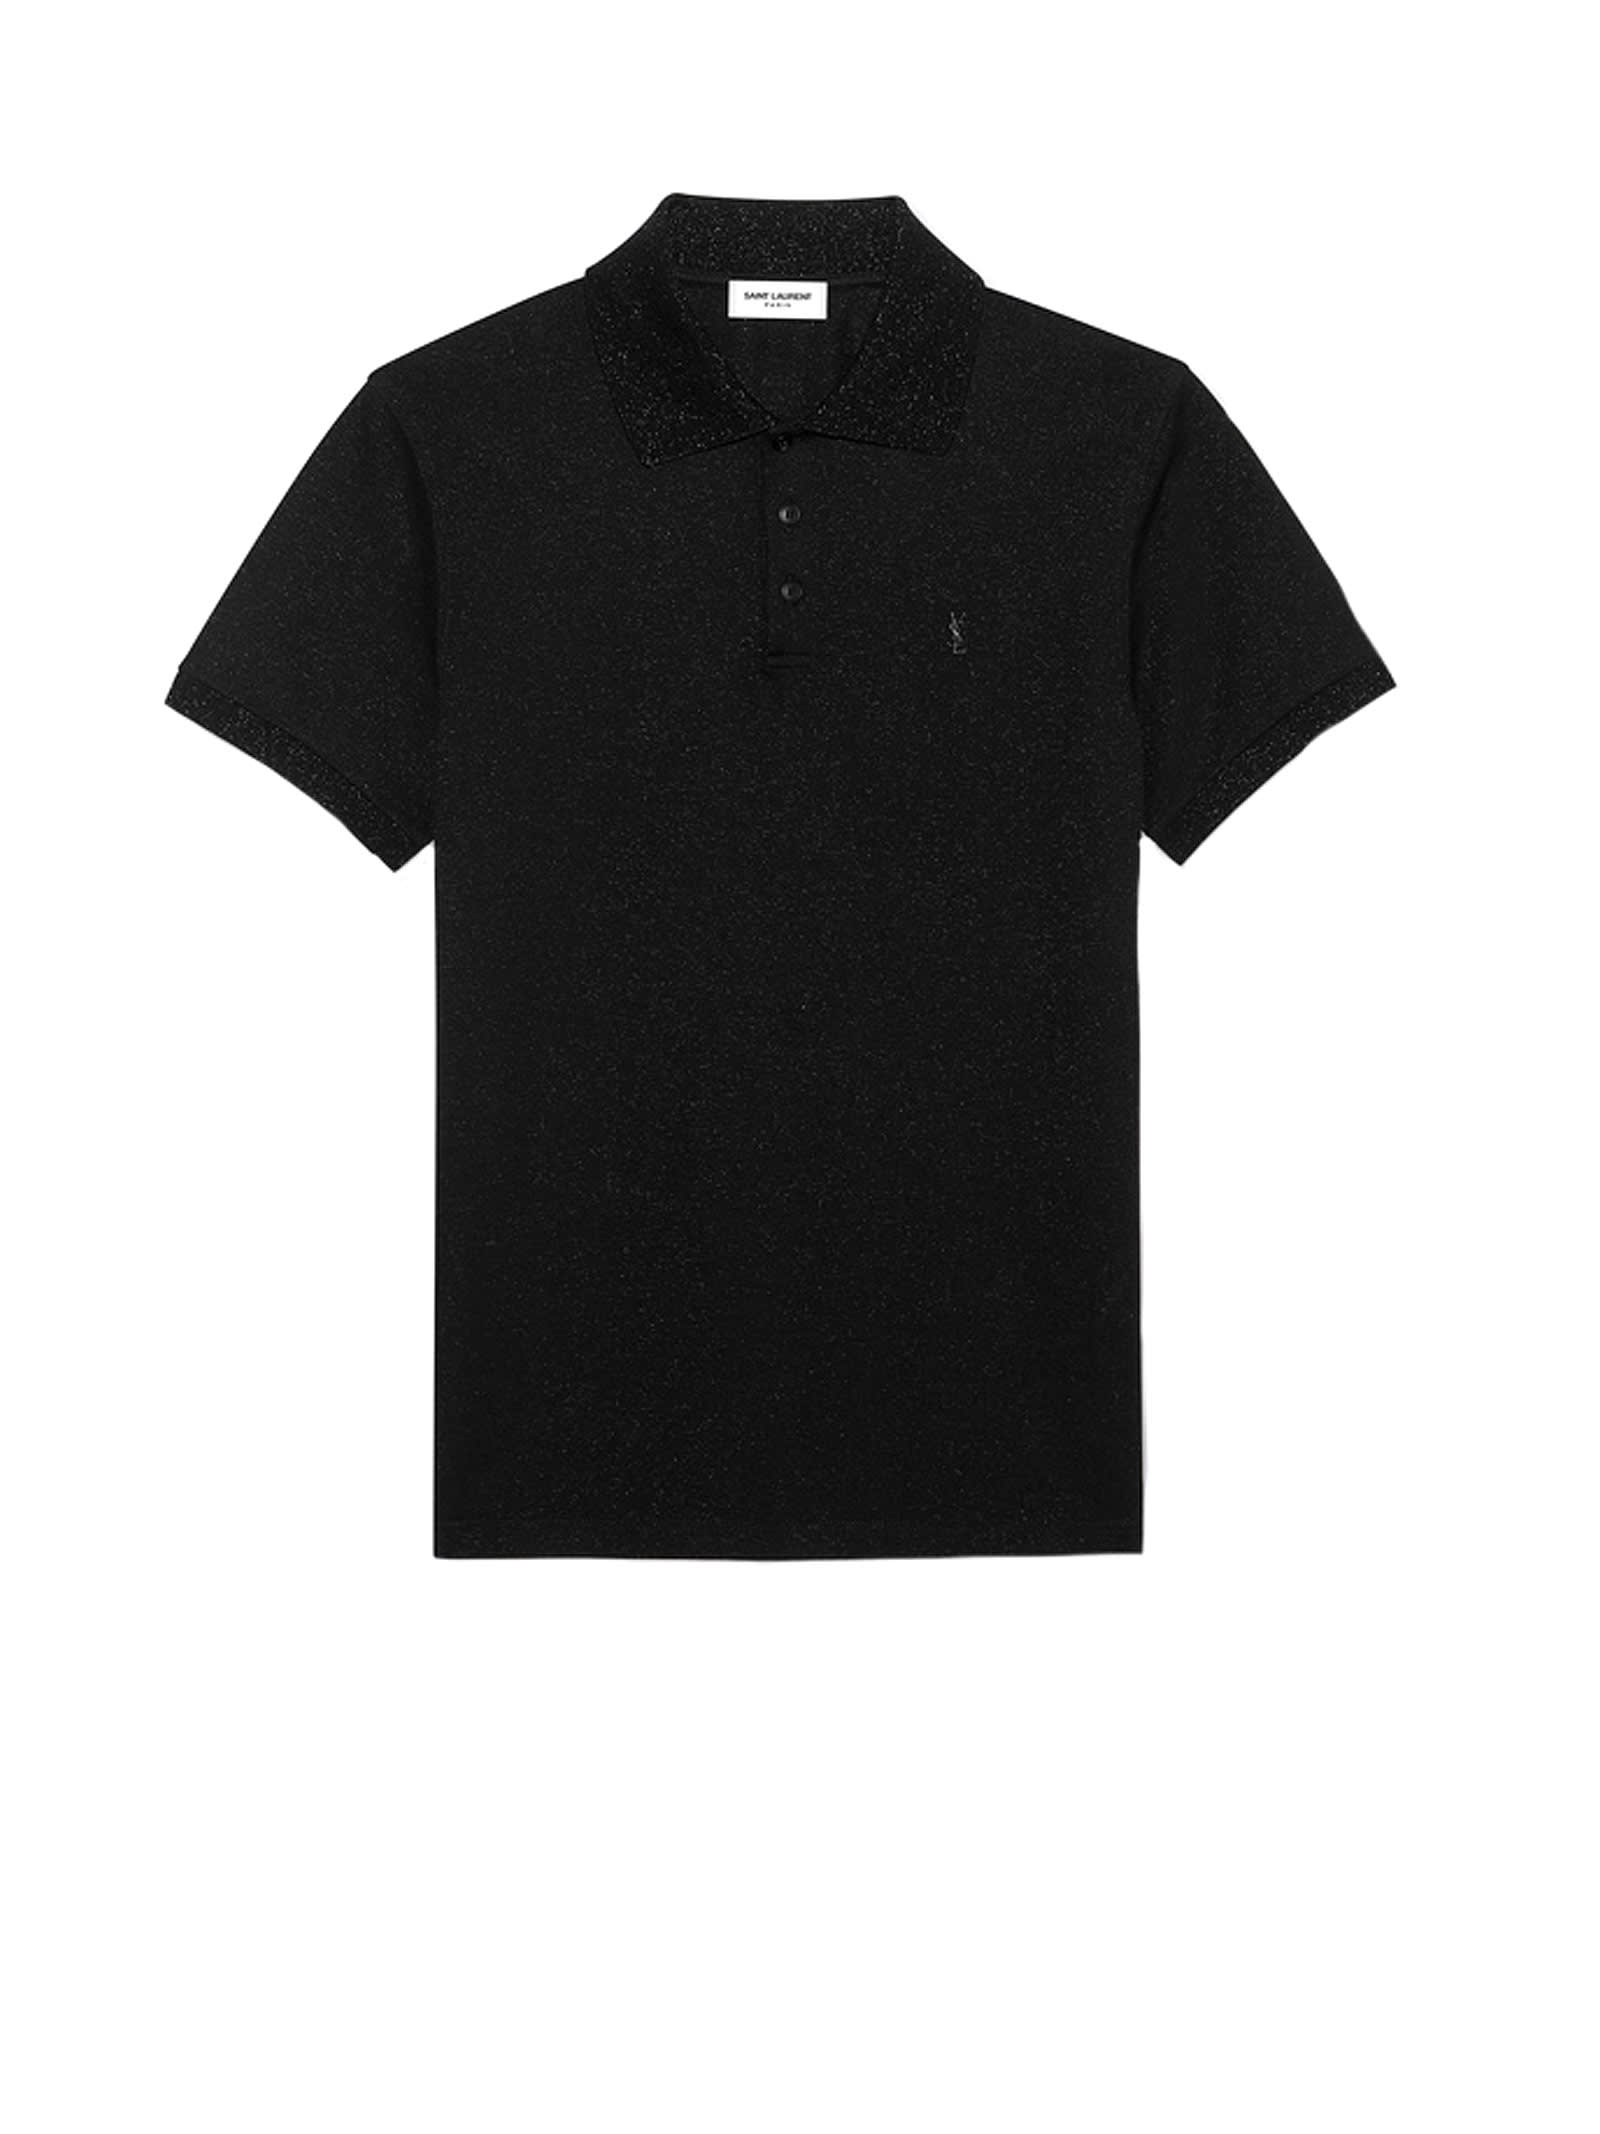 Polo from Saint Laurent with monogram in jersey piquè lamè cotton. Composition: 78% Cotone, 13% Poliestere, 9% Poliammide